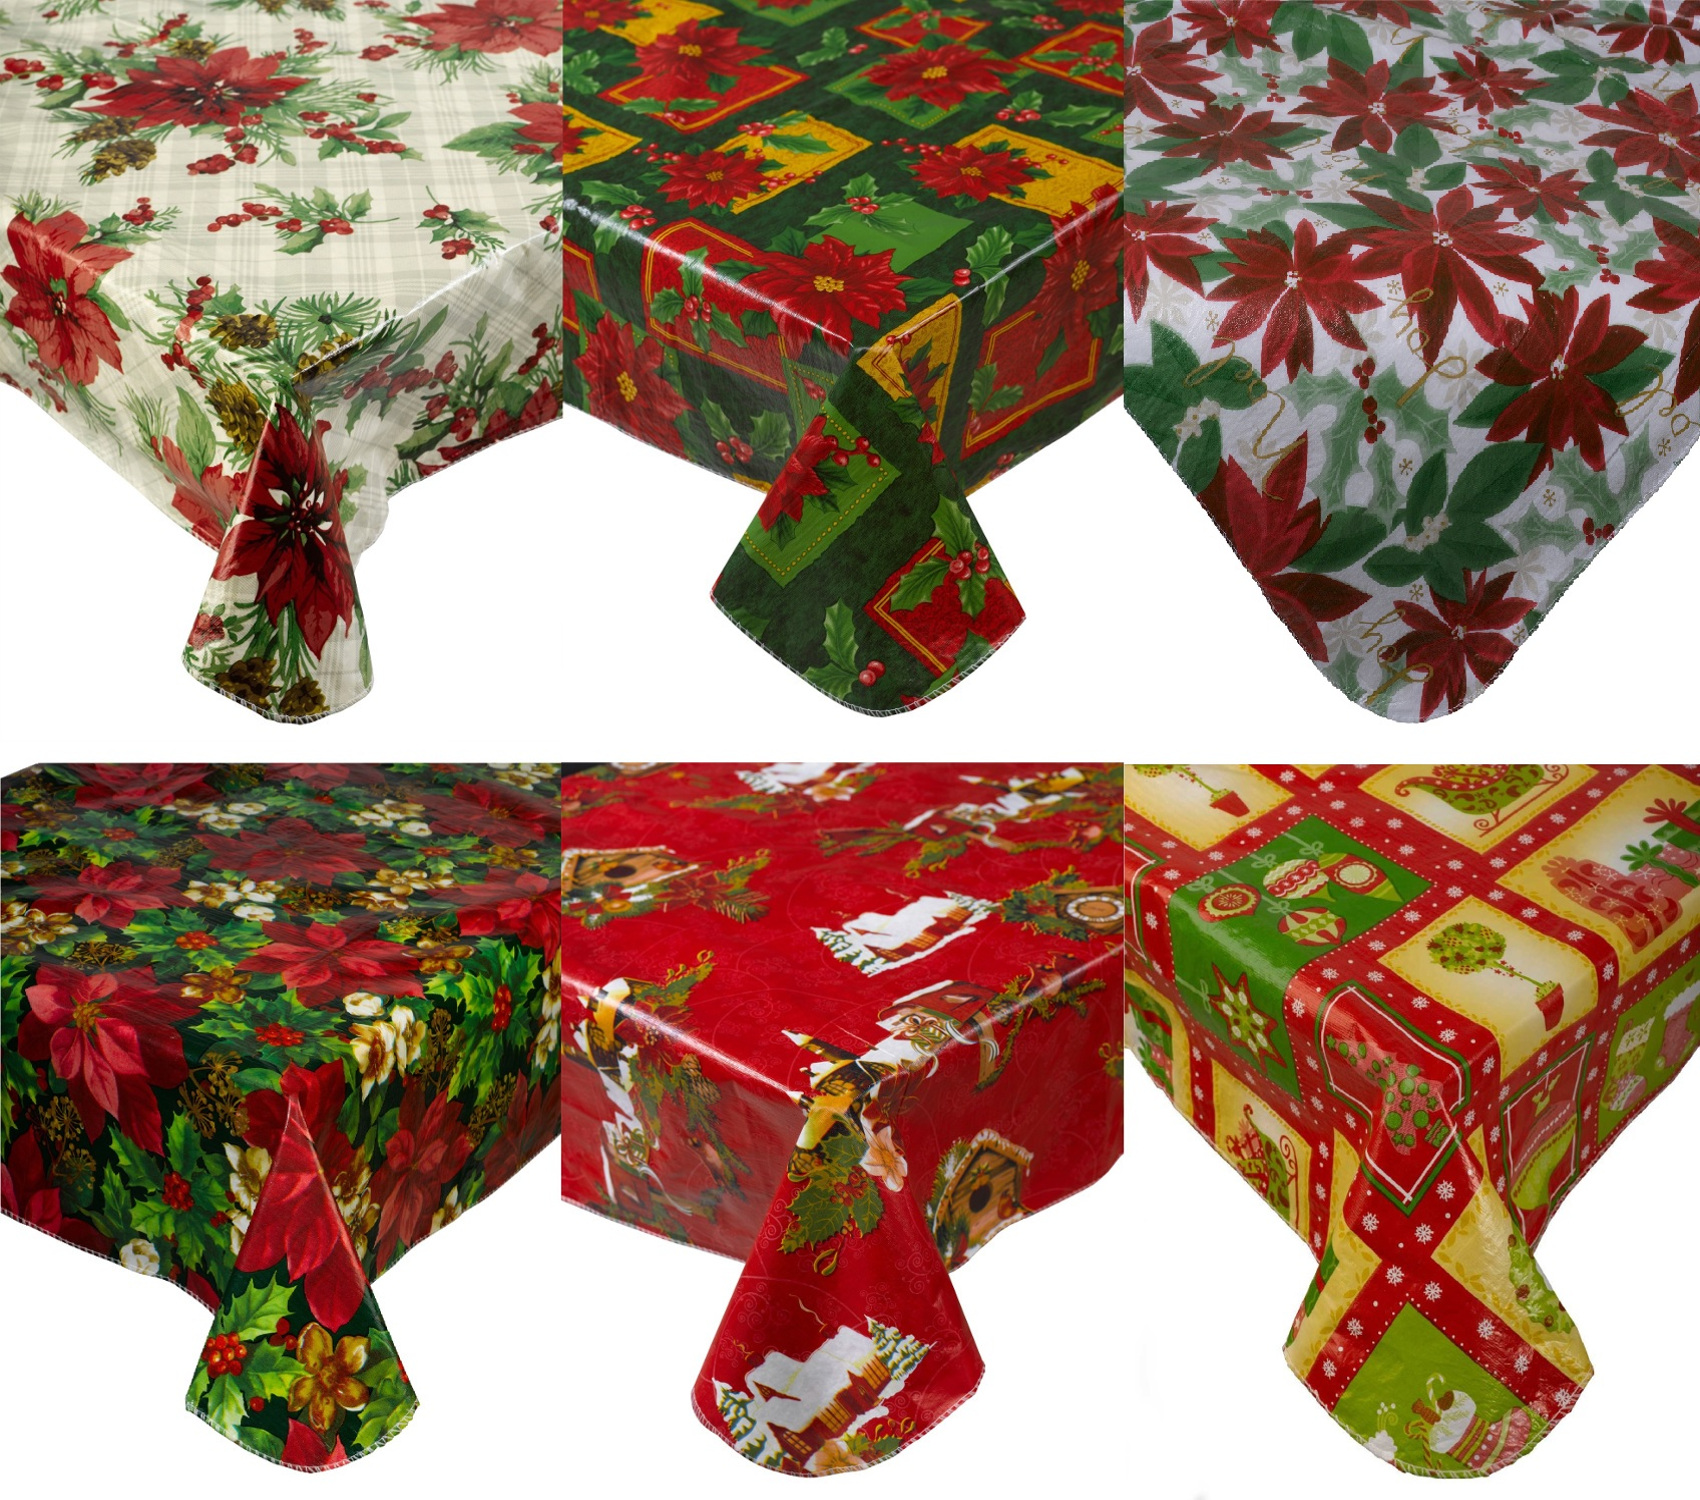 Christmas Tablecloths.Details About Festive Christmas Tablecloth Pvc Flannel Back Xmas Design Home Decor Table Linen